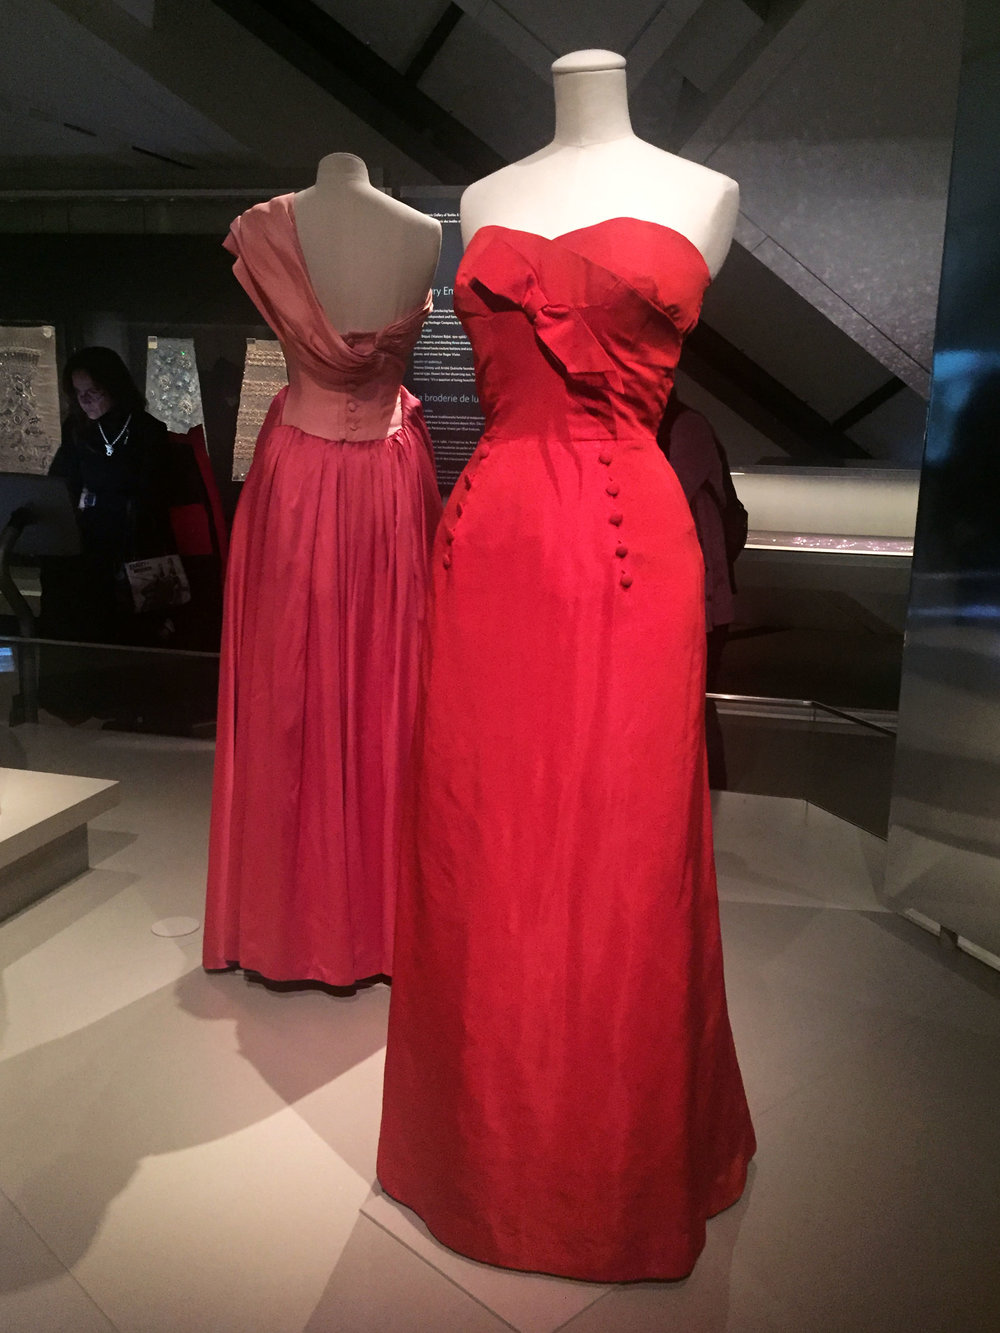 Dior Red and Pink Back Dress.jpg